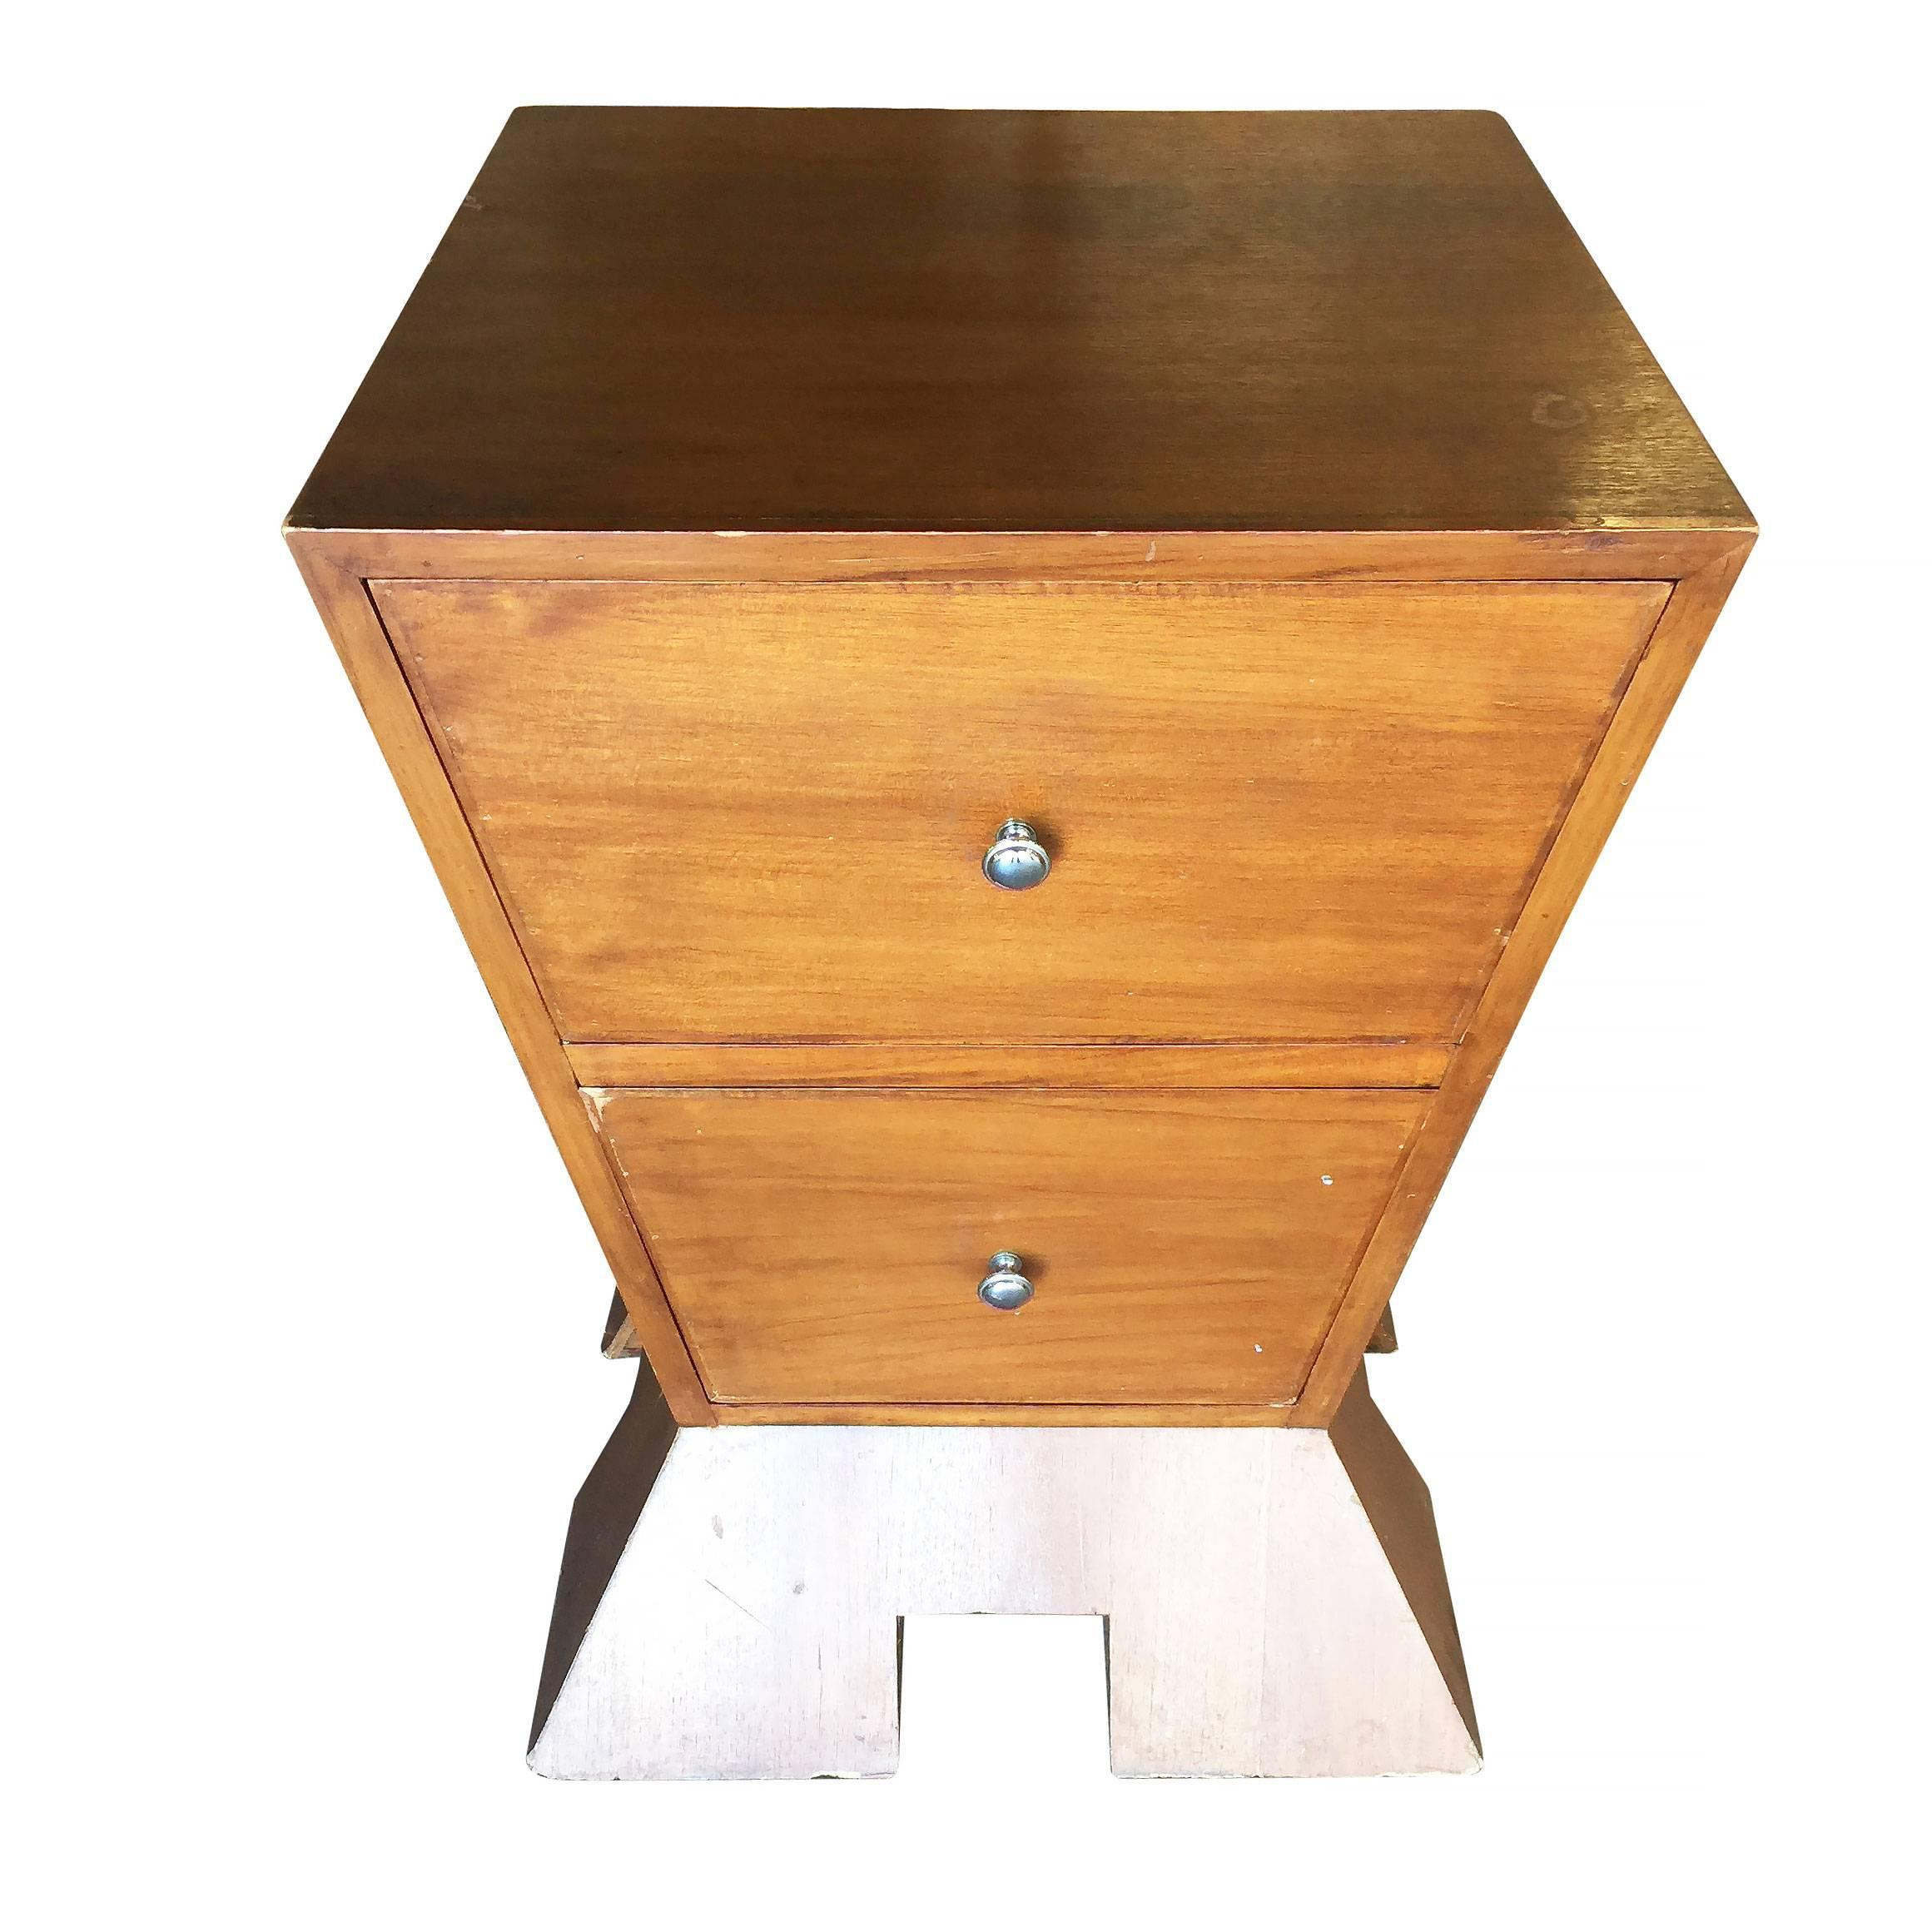 Unique Modernist Bedroom Nightstand Made Of An Inverted Triangle On A  Triangular Base With Two Drawers